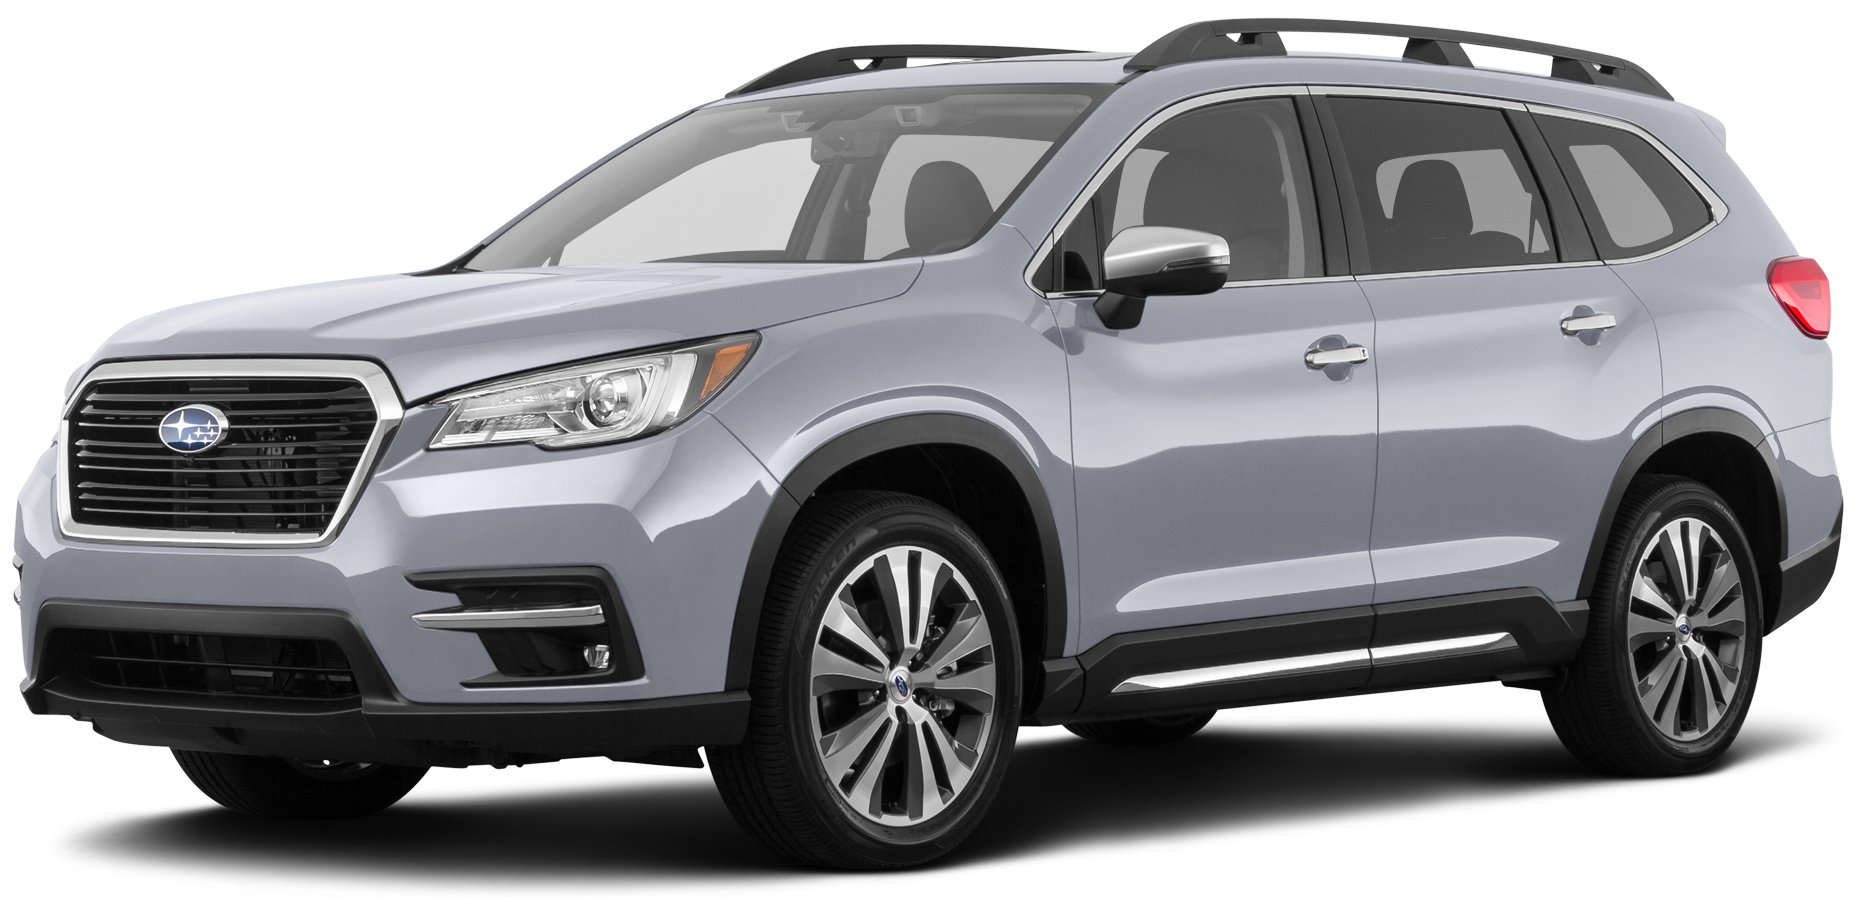 http://images.dealer.com/ddc/vehicles/2021/Subaru/Ascent/SUV/trim_Touring_59c9be/perspective/front-left/2021_76.png